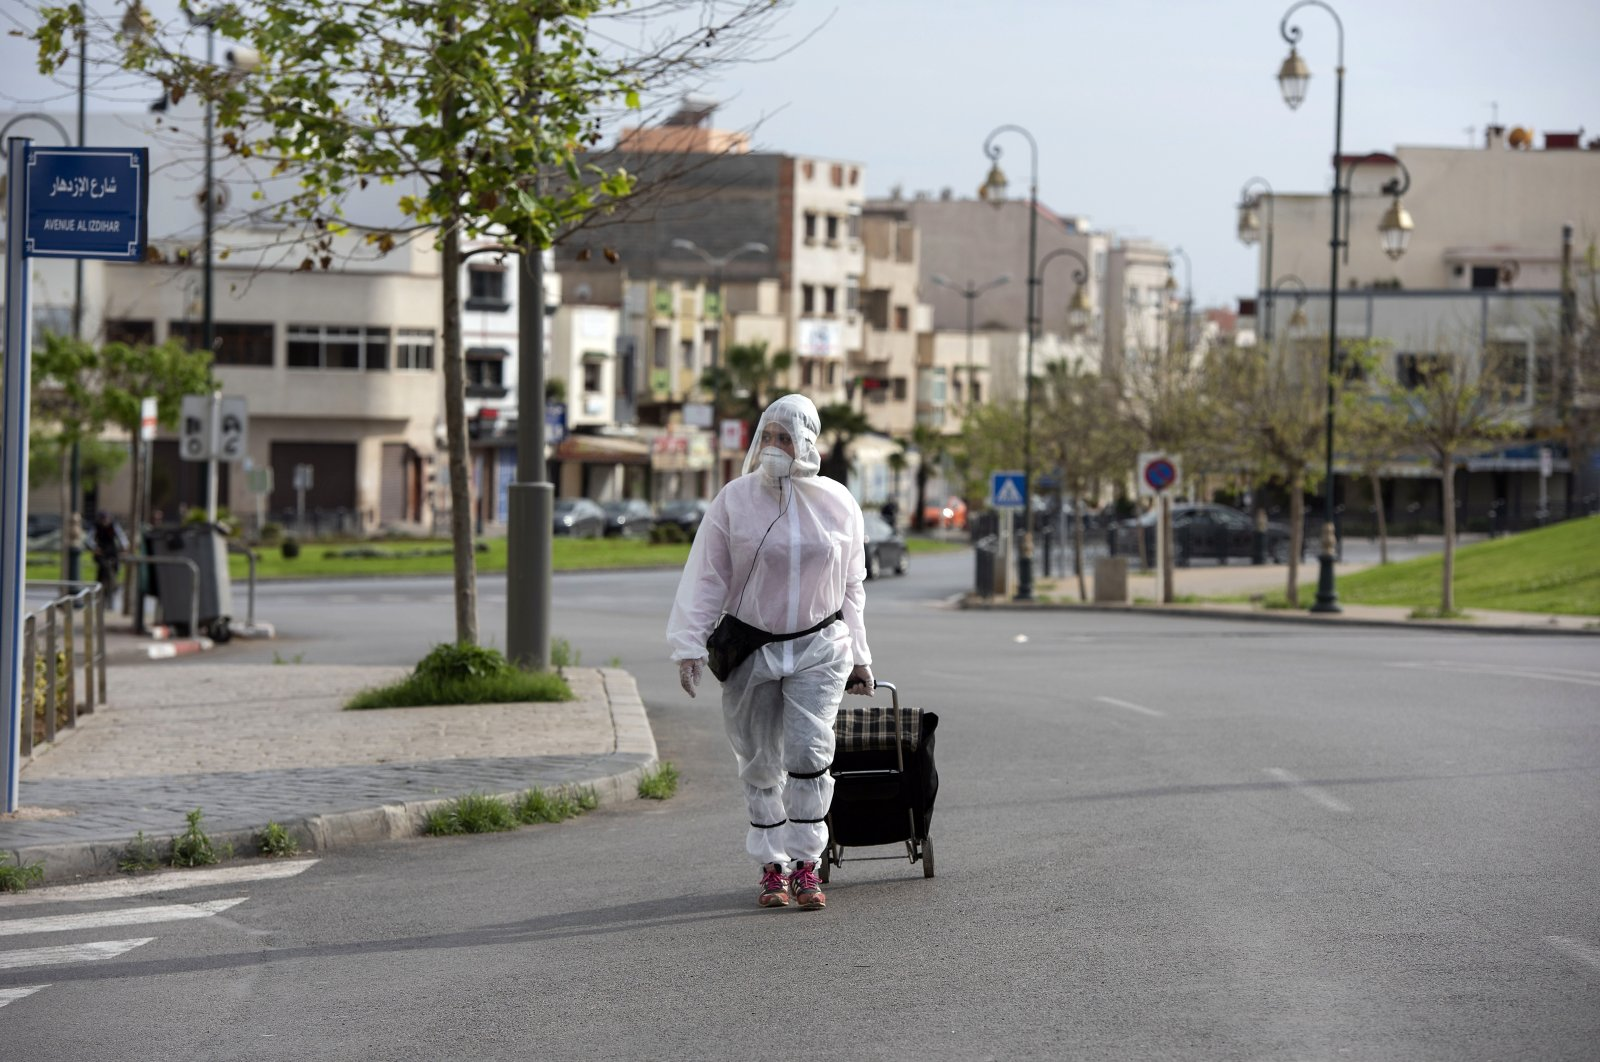 A Moroccan woman wearing protective clothing, volunteers to buy the necessary supplies from the shops and distribute them to the needy in Rabat, Morocco, April 18, 2020. (EPA Photo)